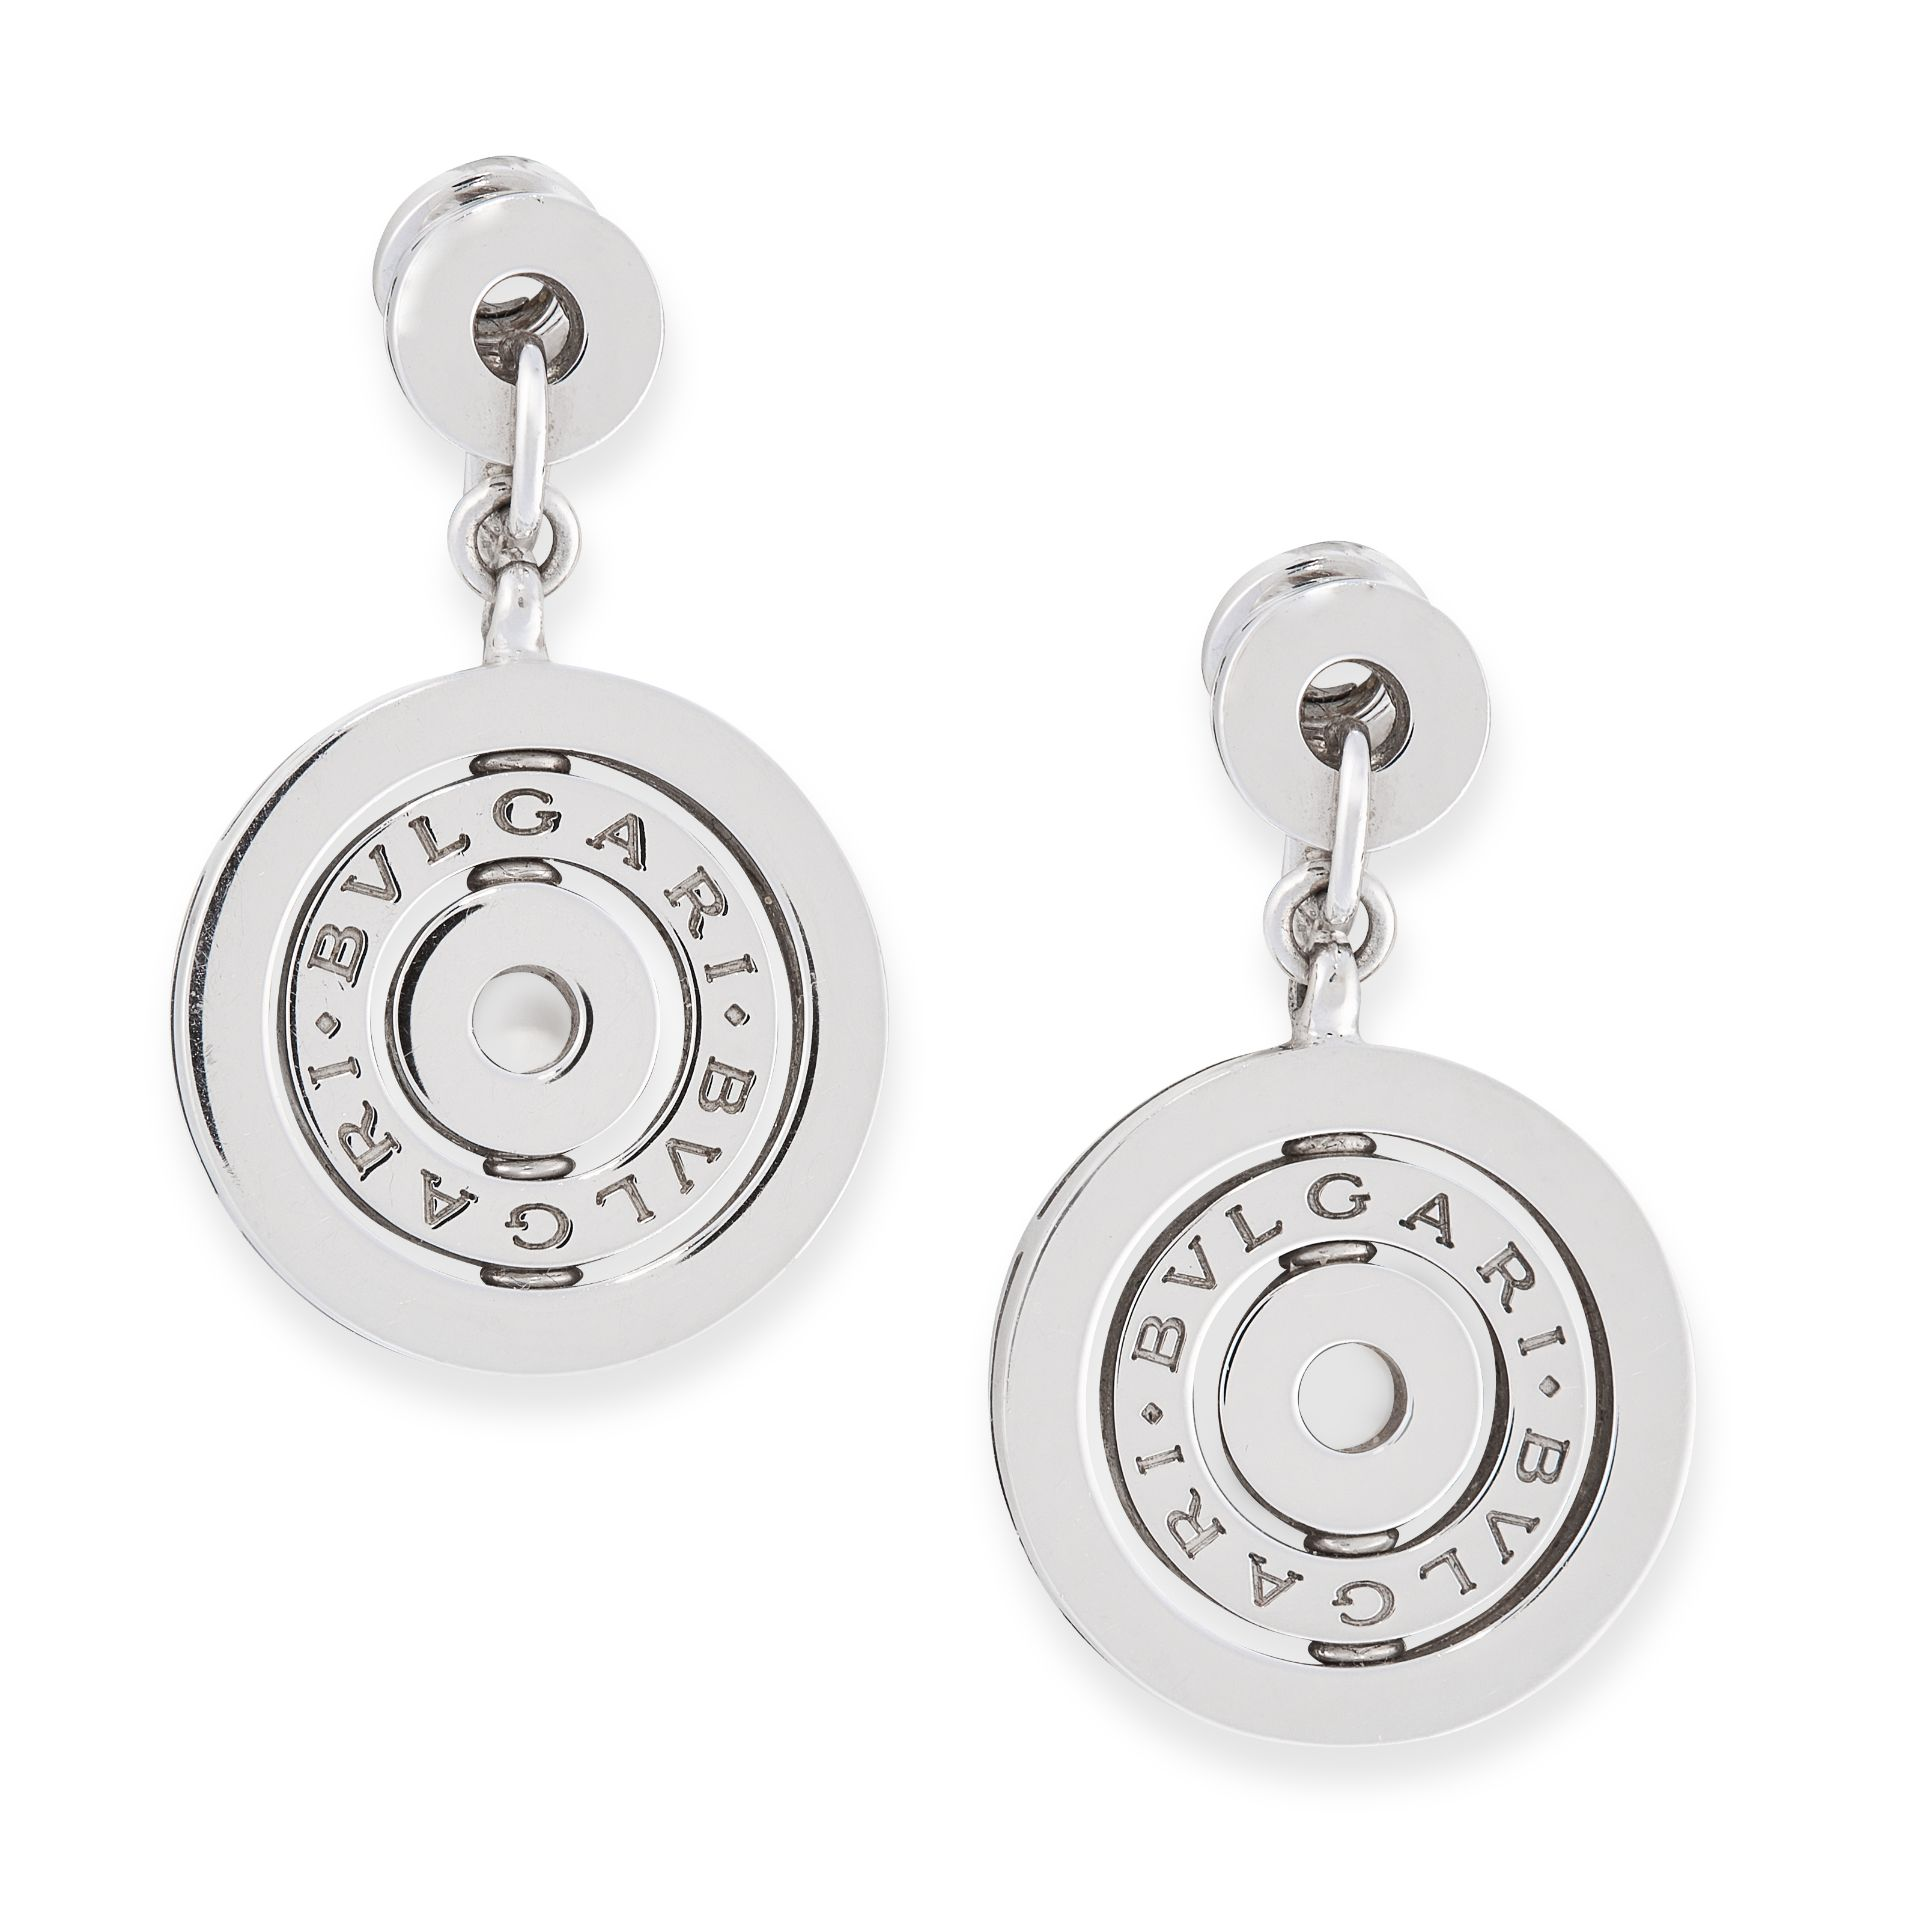 A PAIR OF ASTRAL CLIP EARRINGS, BULGARI in 18ct white gold, formed of concentric circles stamped